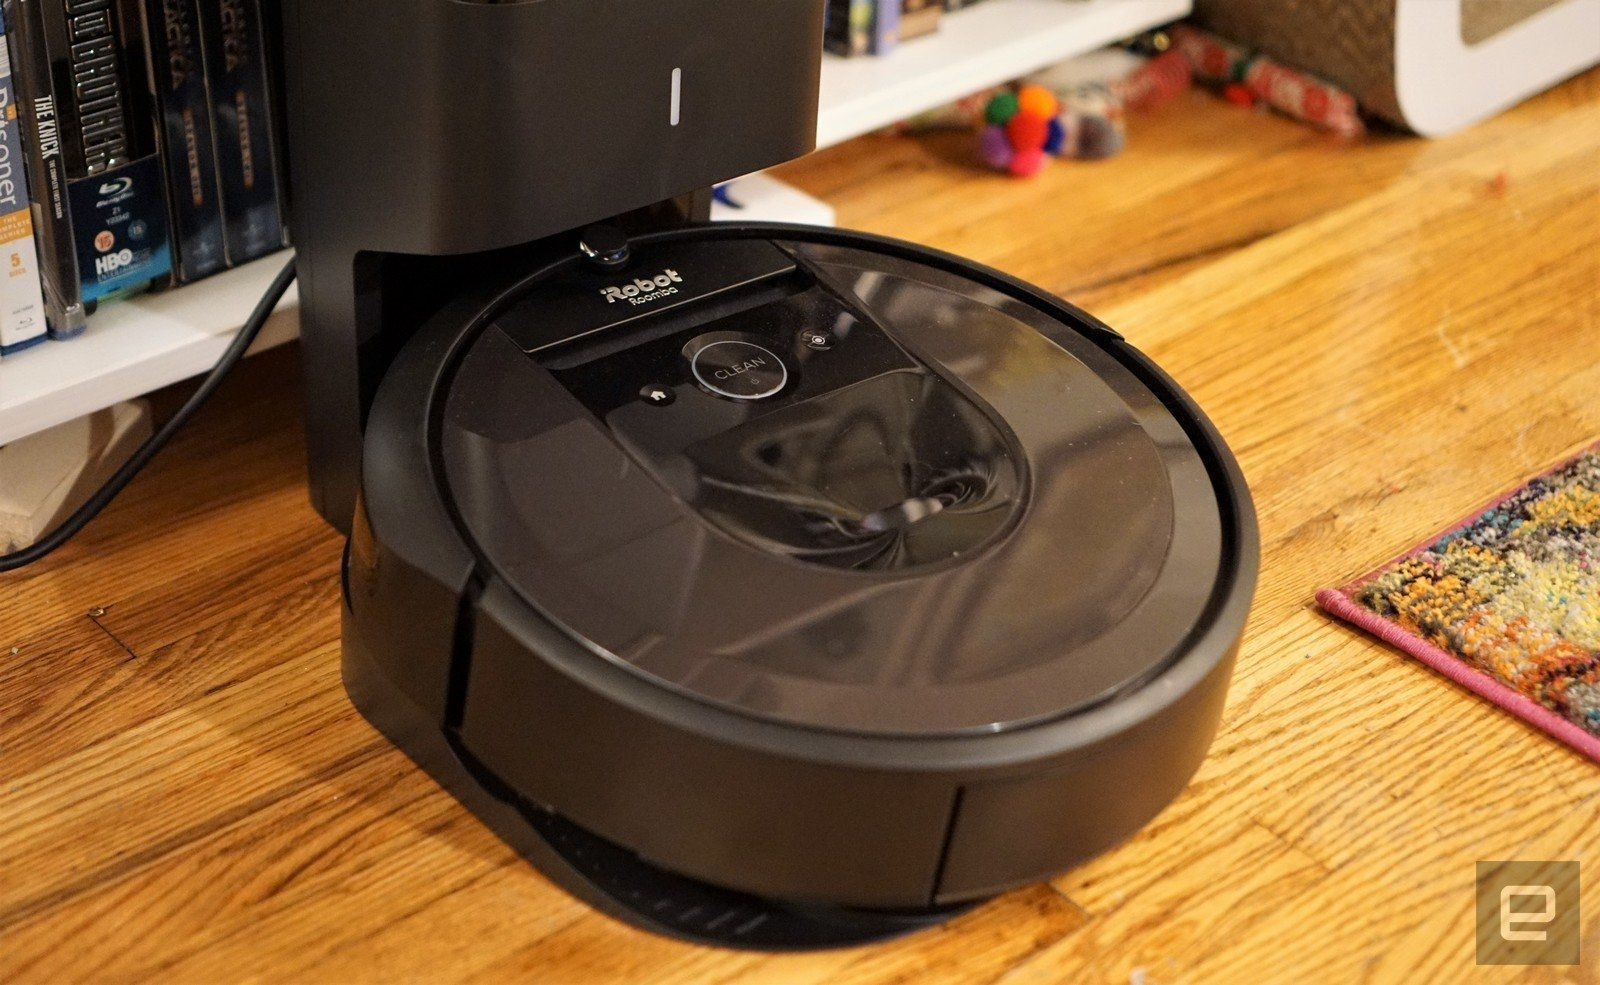 The Roomba i7+ is a step forward for home robots | DeviceDaily.com